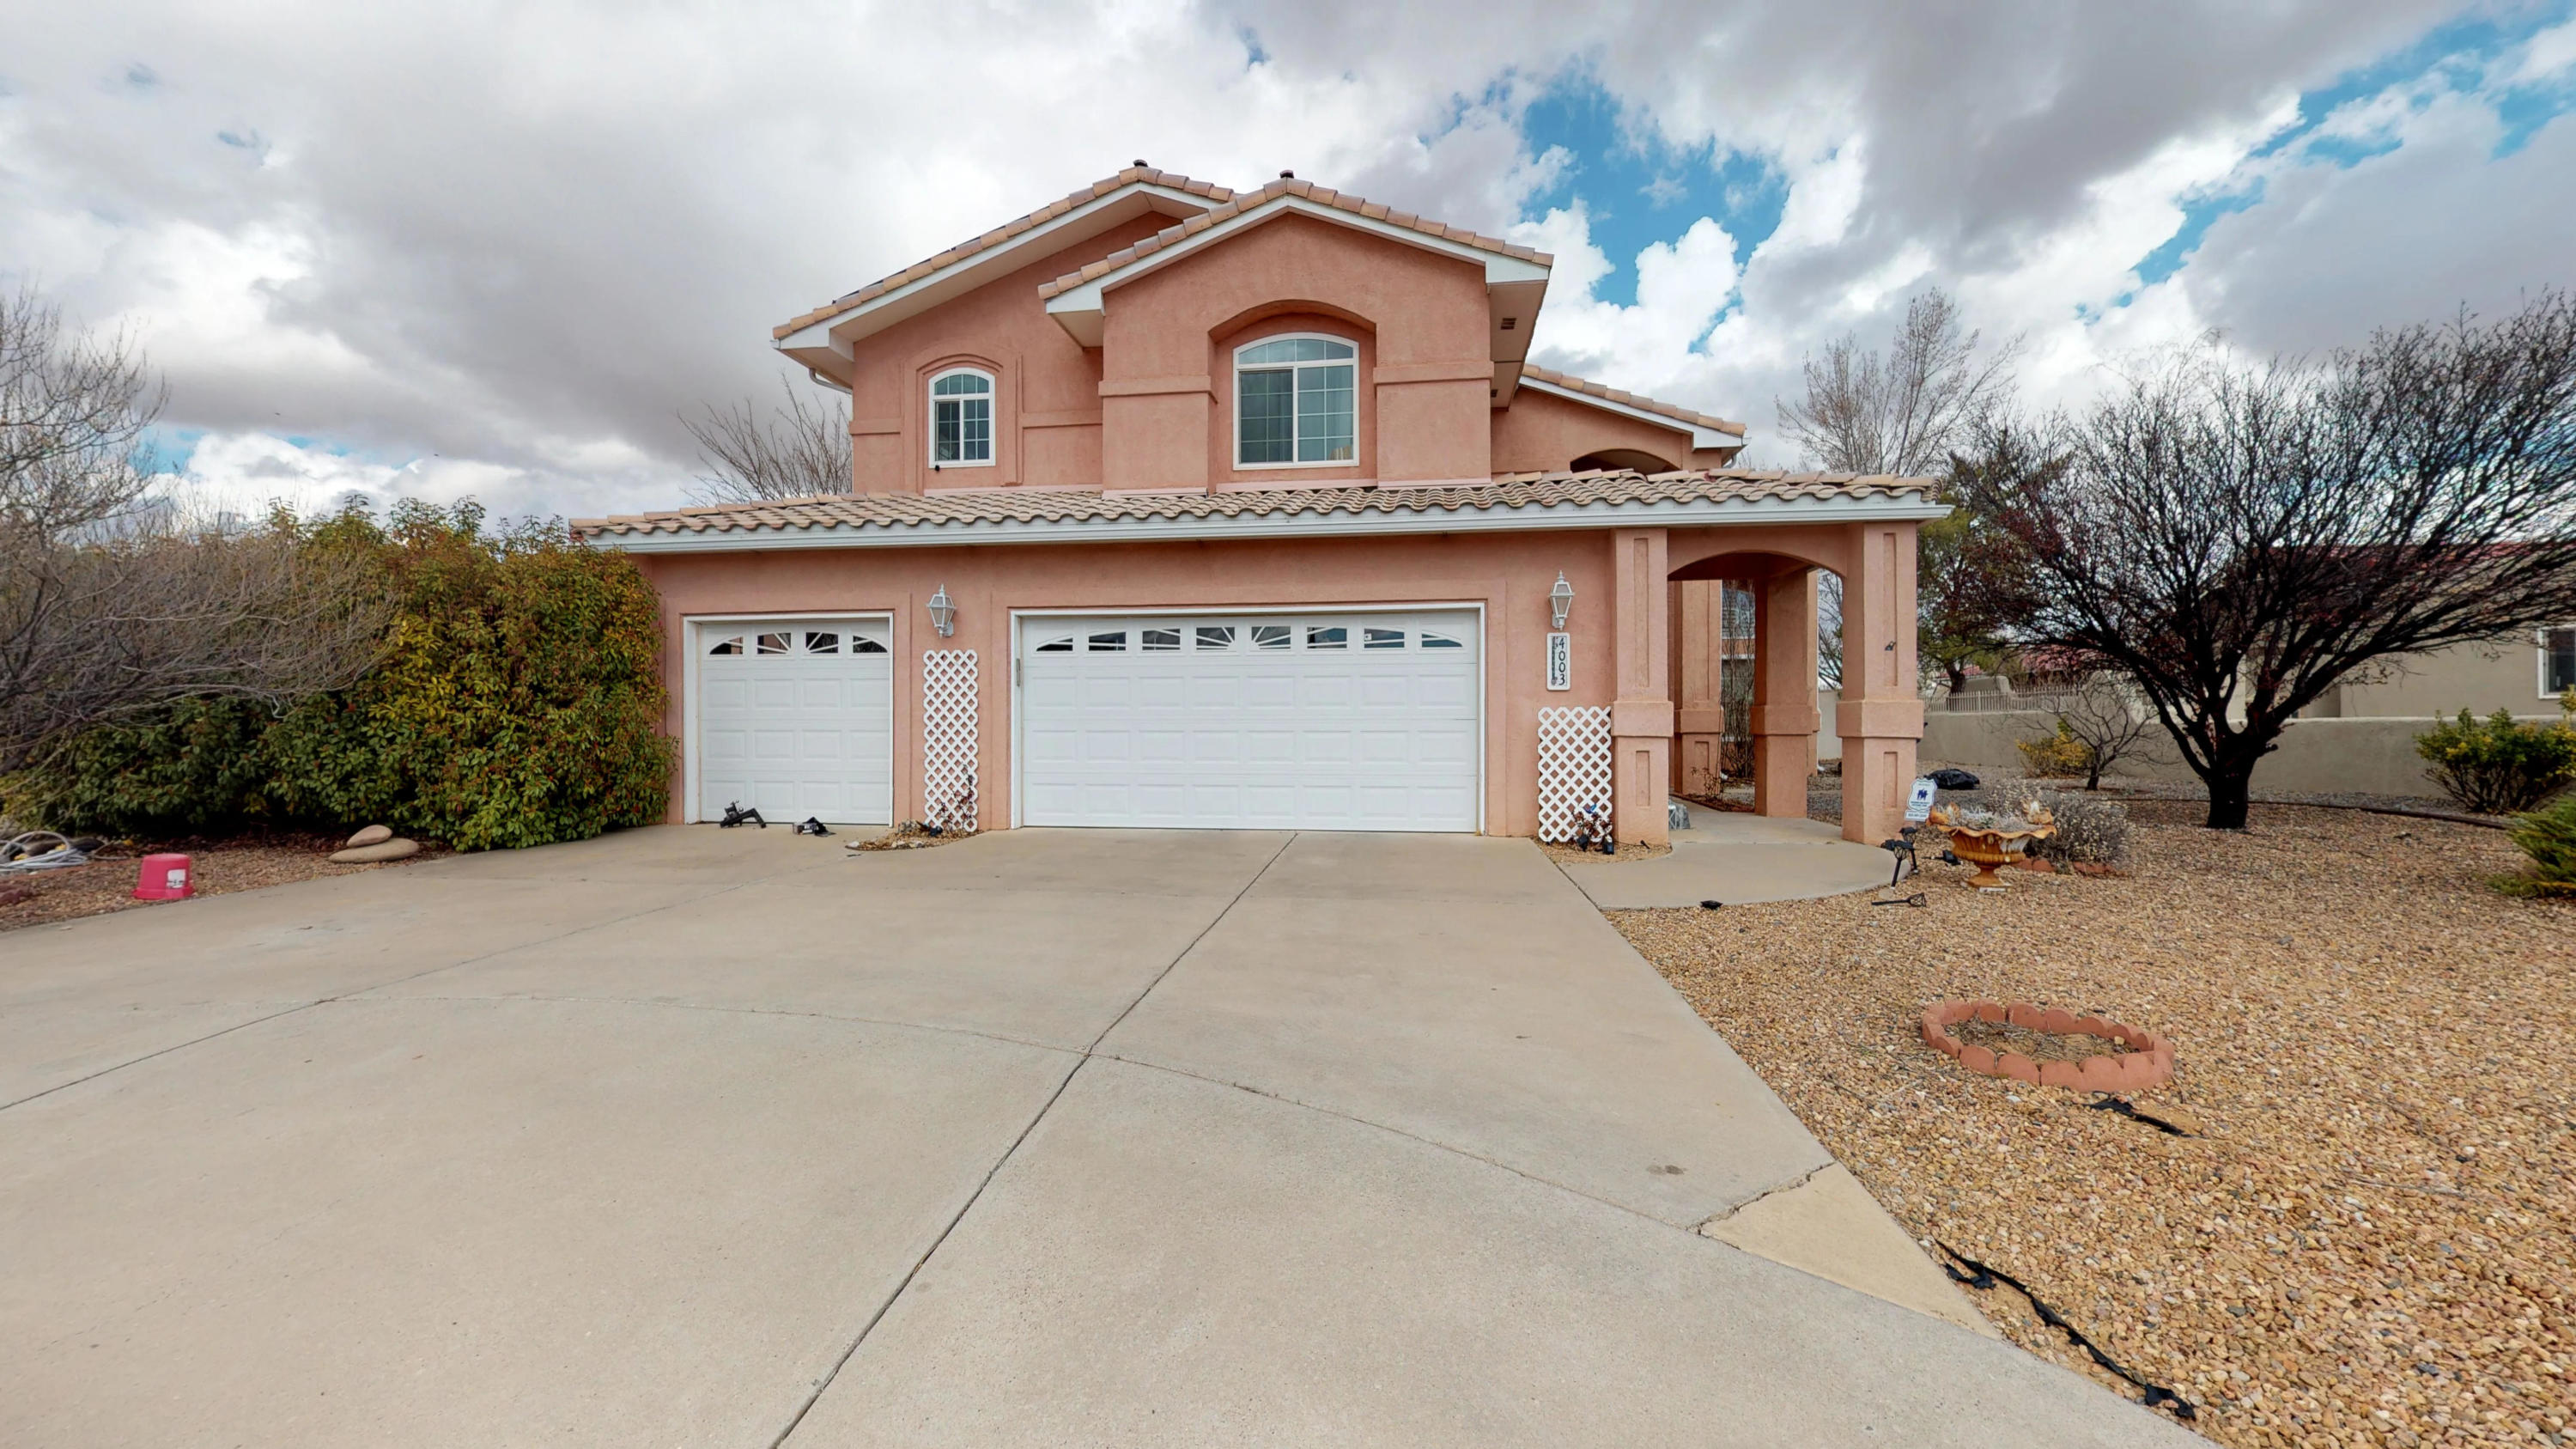 4003 SE Saint Andrews Drive, Rio Rancho in Sandoval County, NM 87124 Home for Sale